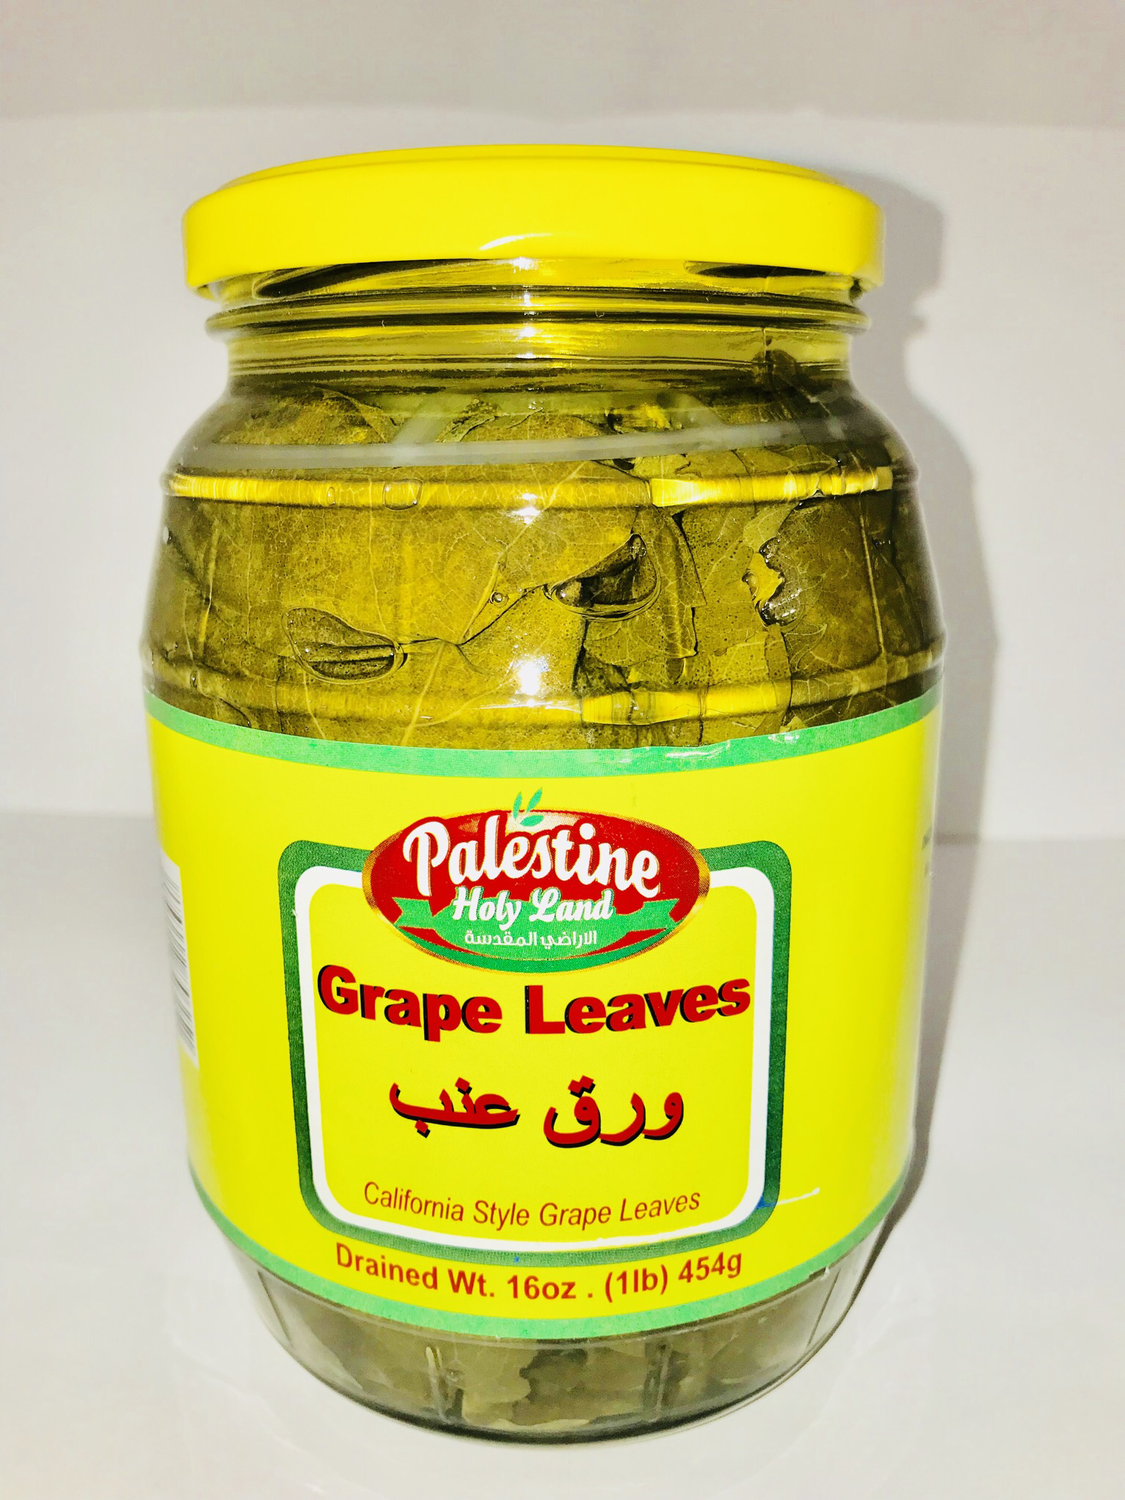 Palestine Holy Land grape leaves 454g